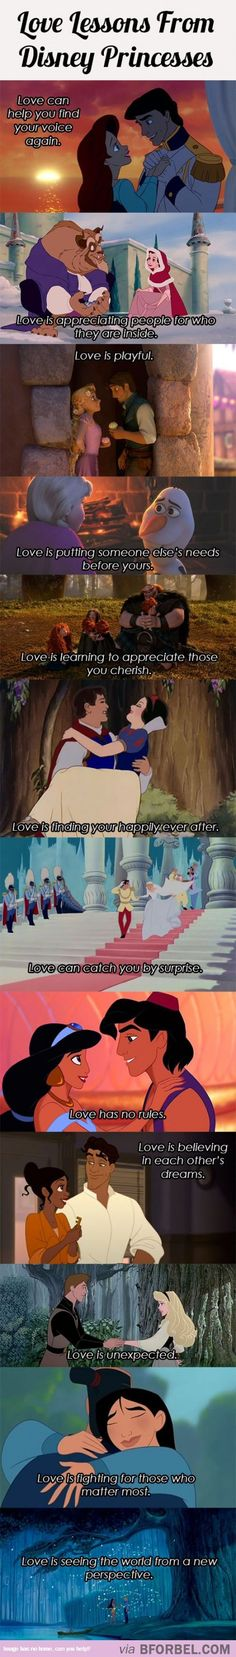 12 Love Lessons That Disney Princesses Taught Us…